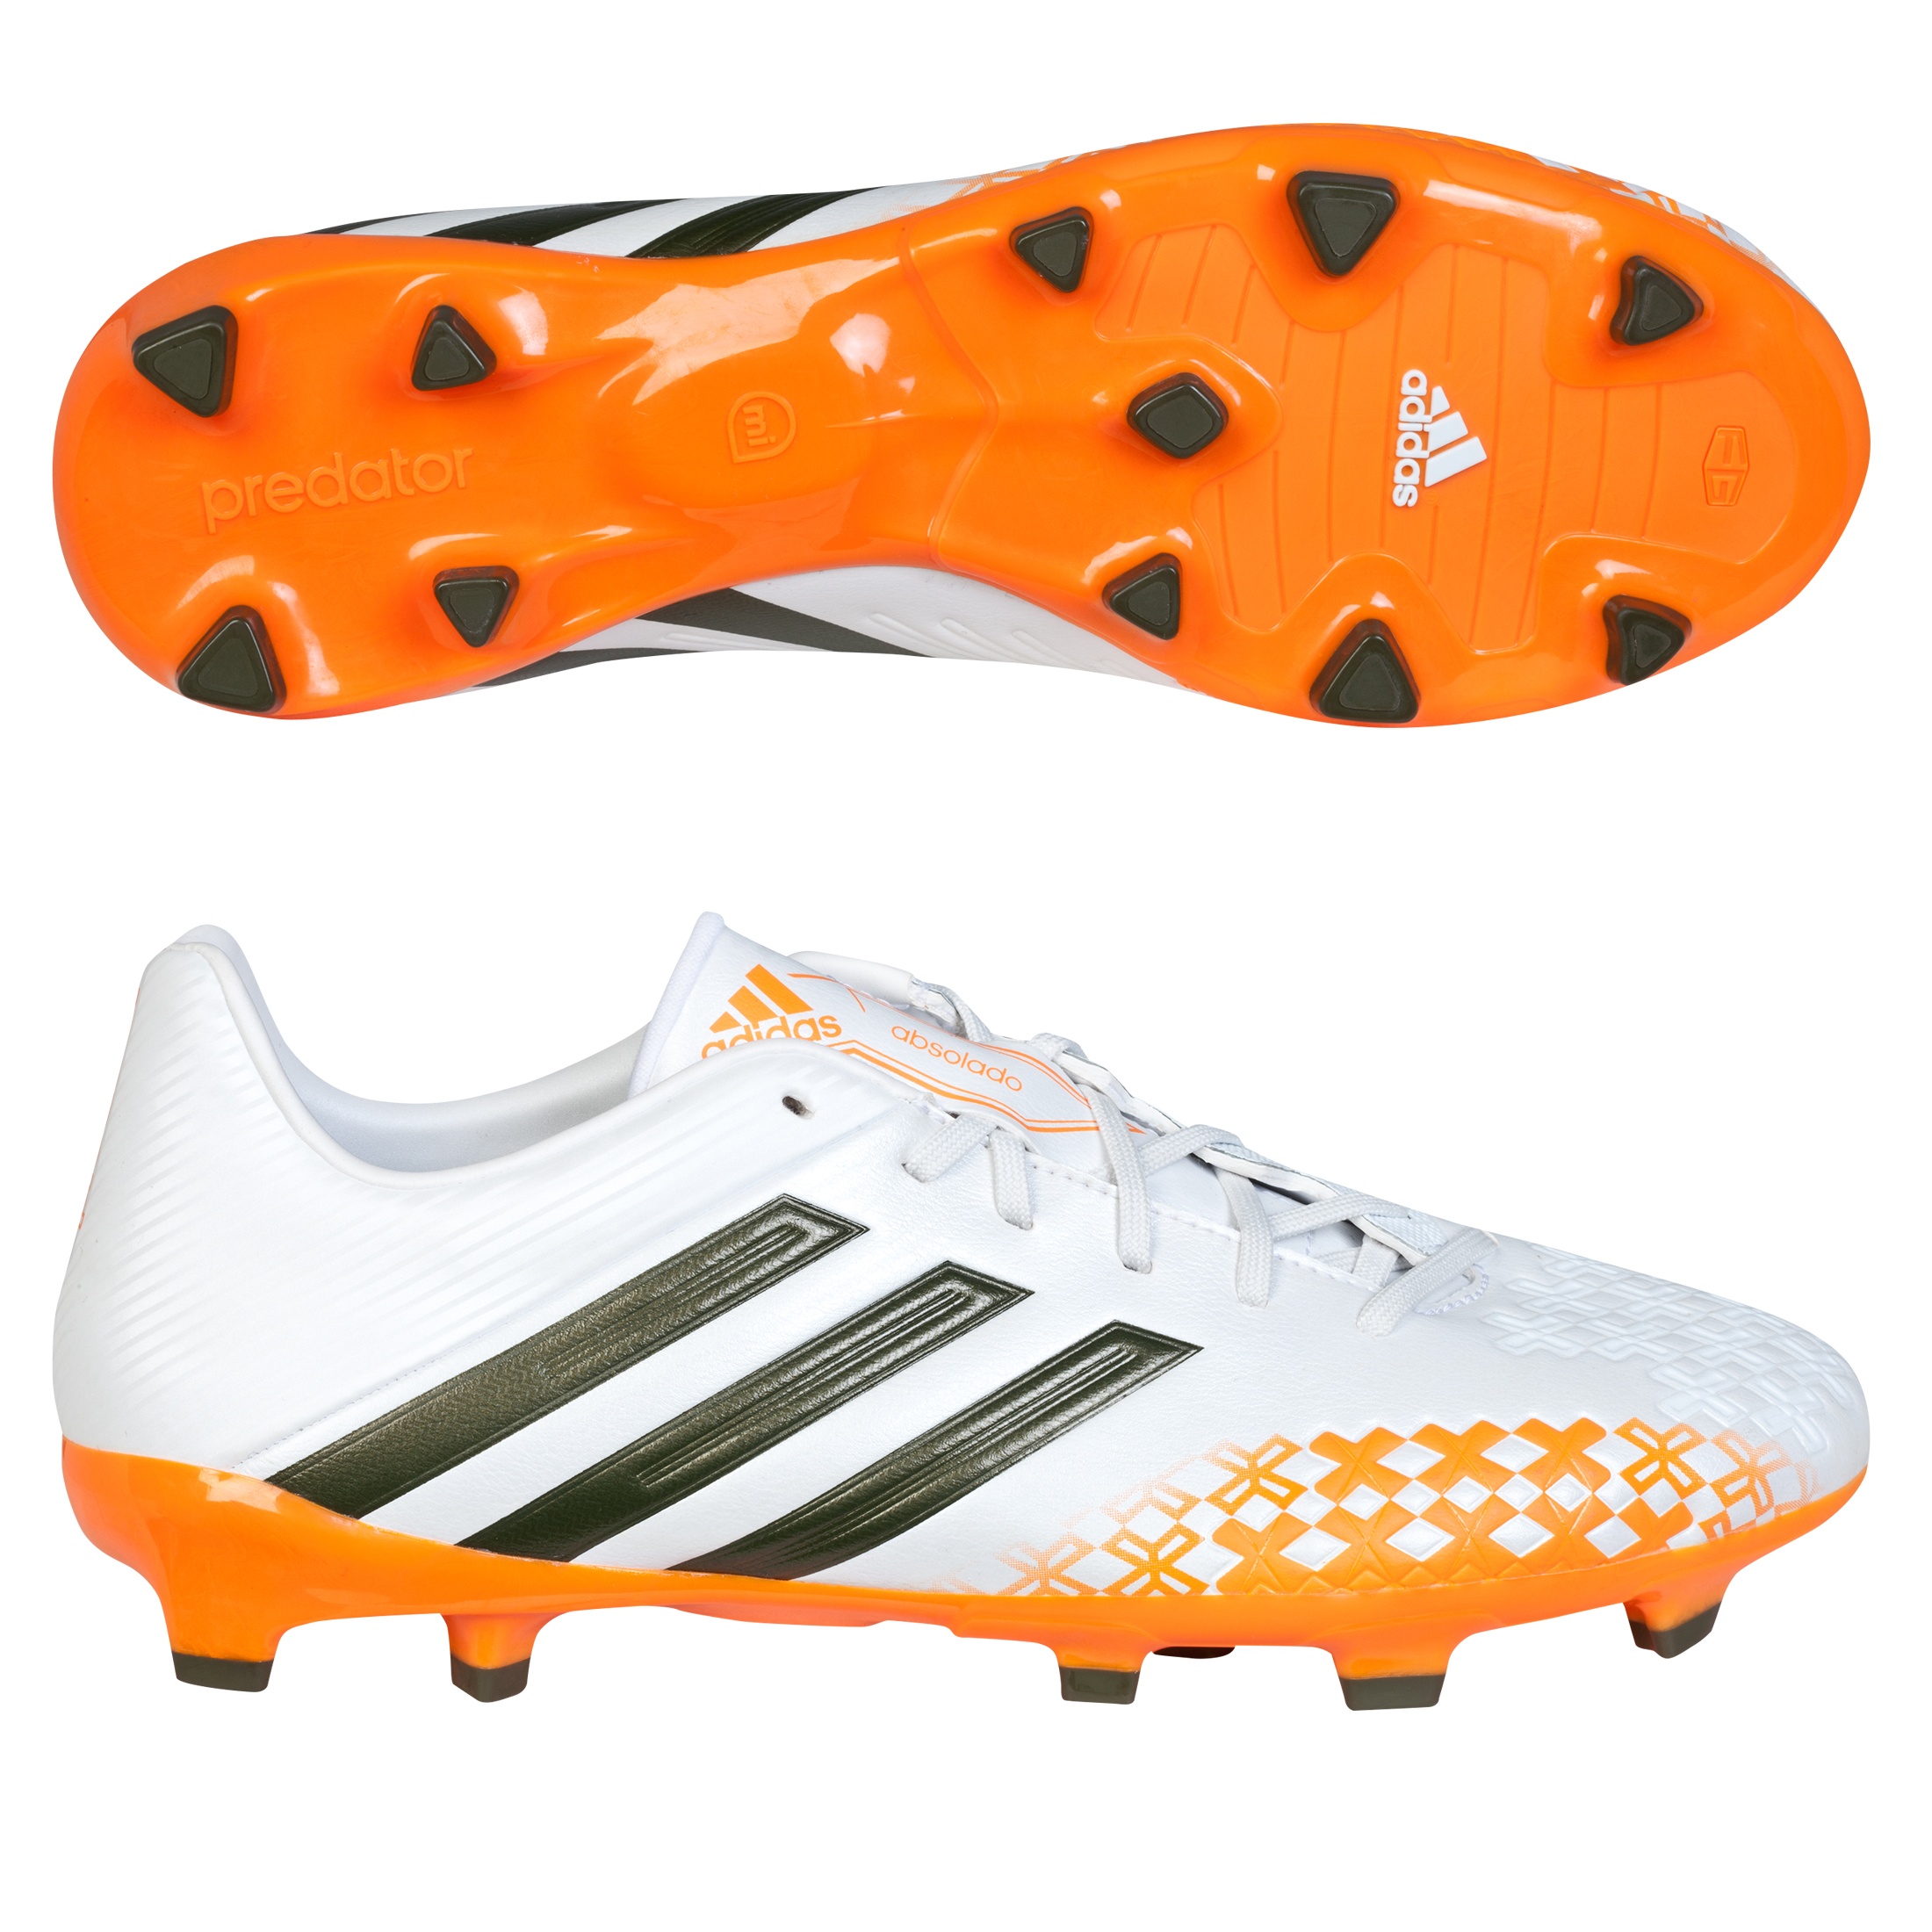 adidas P Absolado LZ TRX TRX Firm Ground Football Boots White